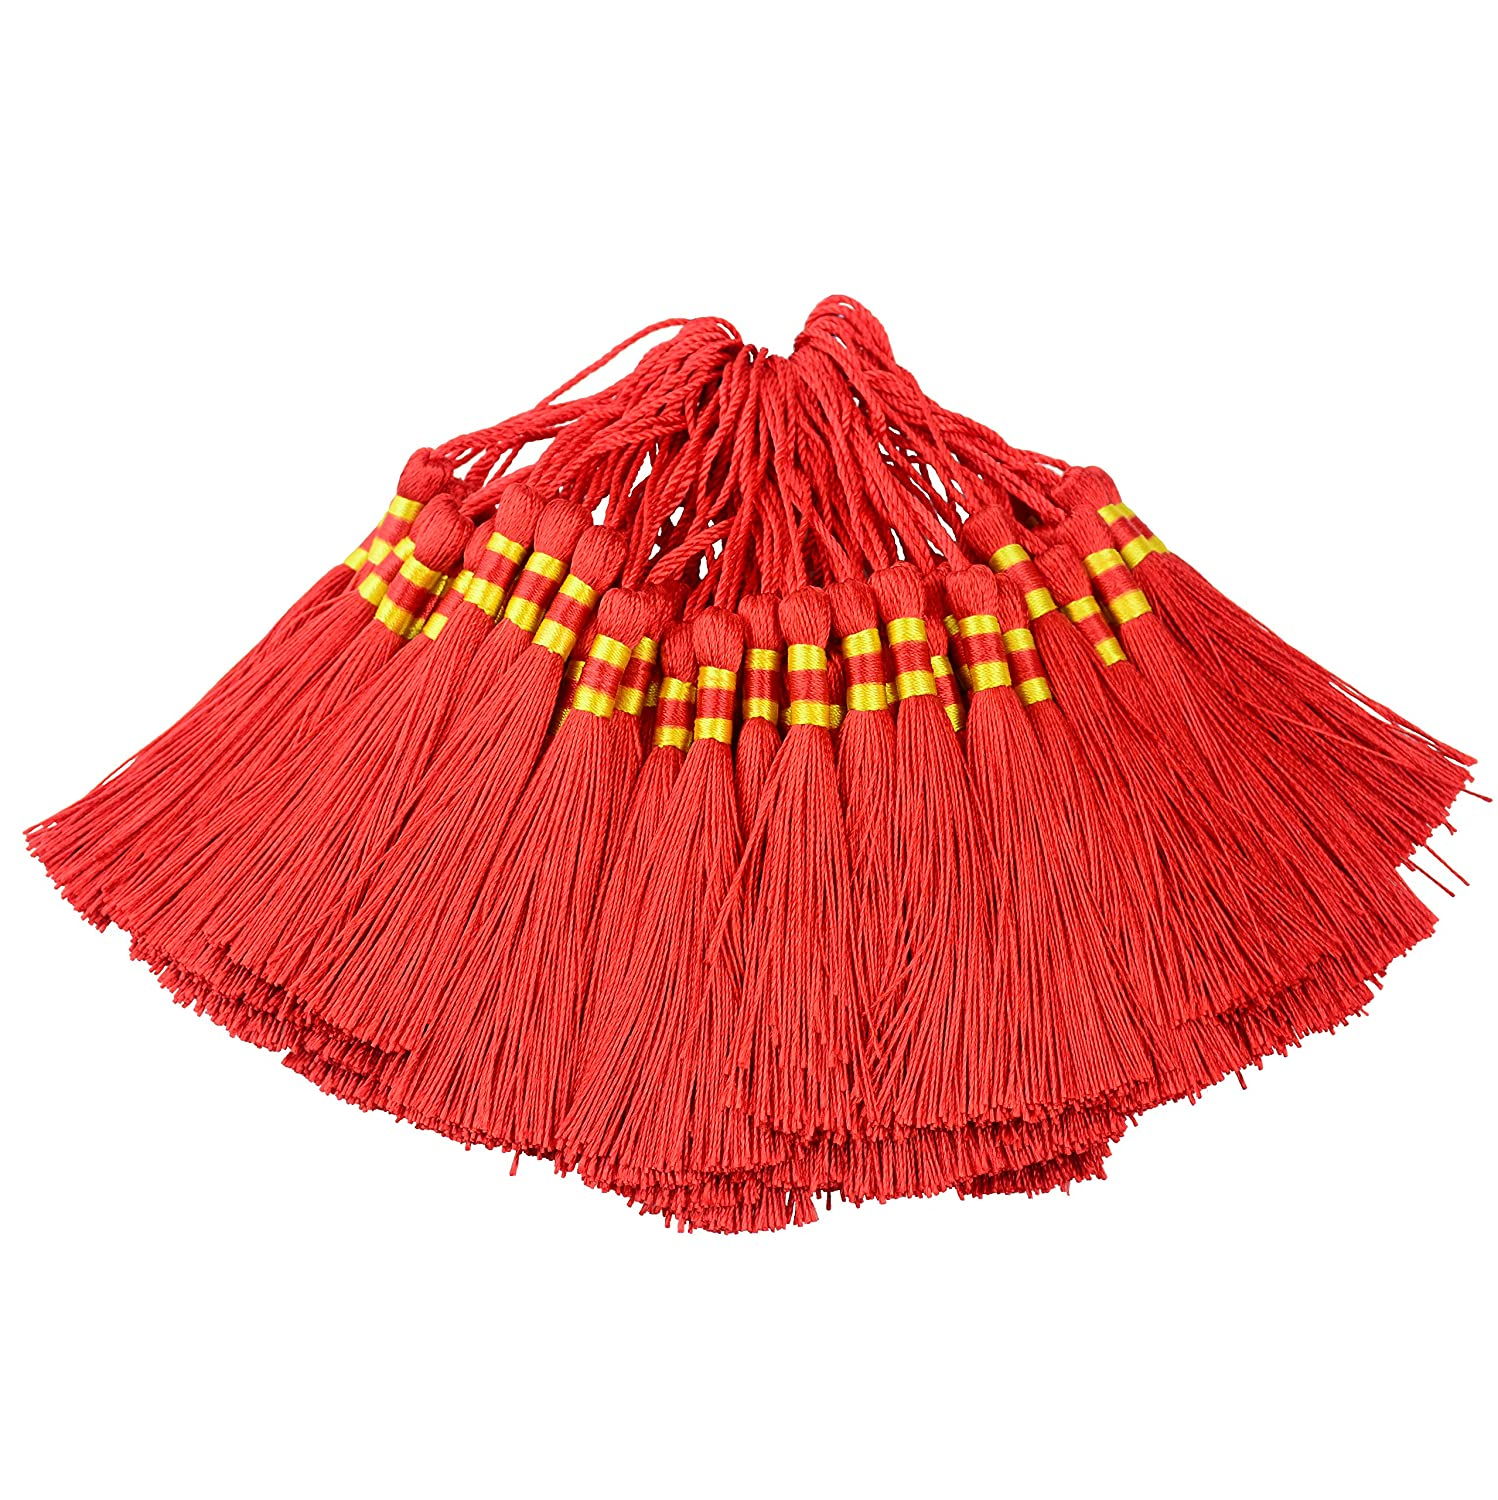 100pcs Triple Colored 14cm/5.5 Inch Silky Floss Bookmark Tassels with 2.16-Inch Cord Loop and Small Chinese Knot for Jewelry Making, Souvenir, Bookmarks, DIY Craft Accessory (Black) Makhry MK-TRPCOL-Black